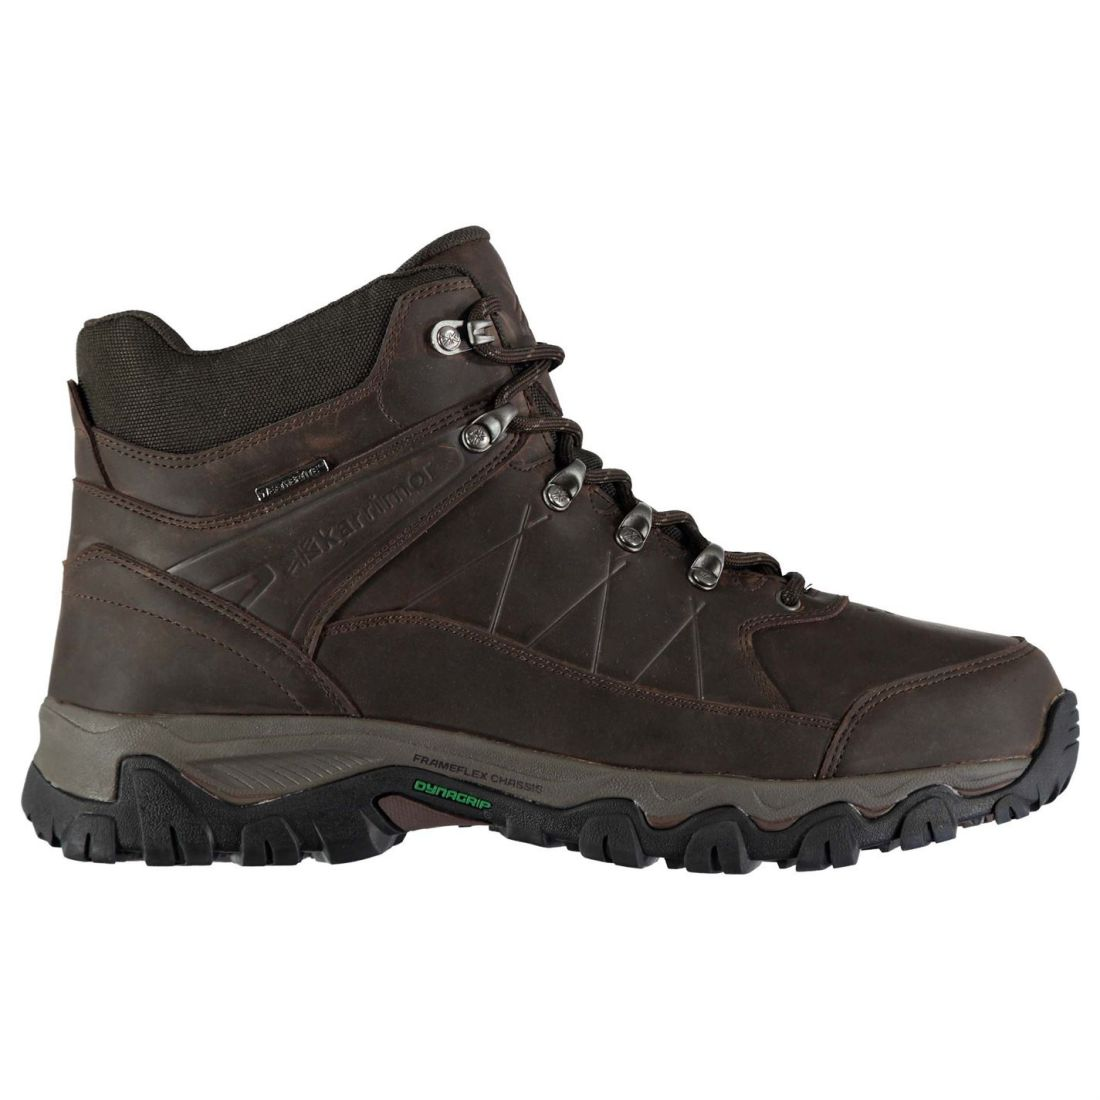 f1bd837edcd23d Image is loading Karrimor-Mens-Dales-Mid-Waterproof-Walking-Boots-Breathable -